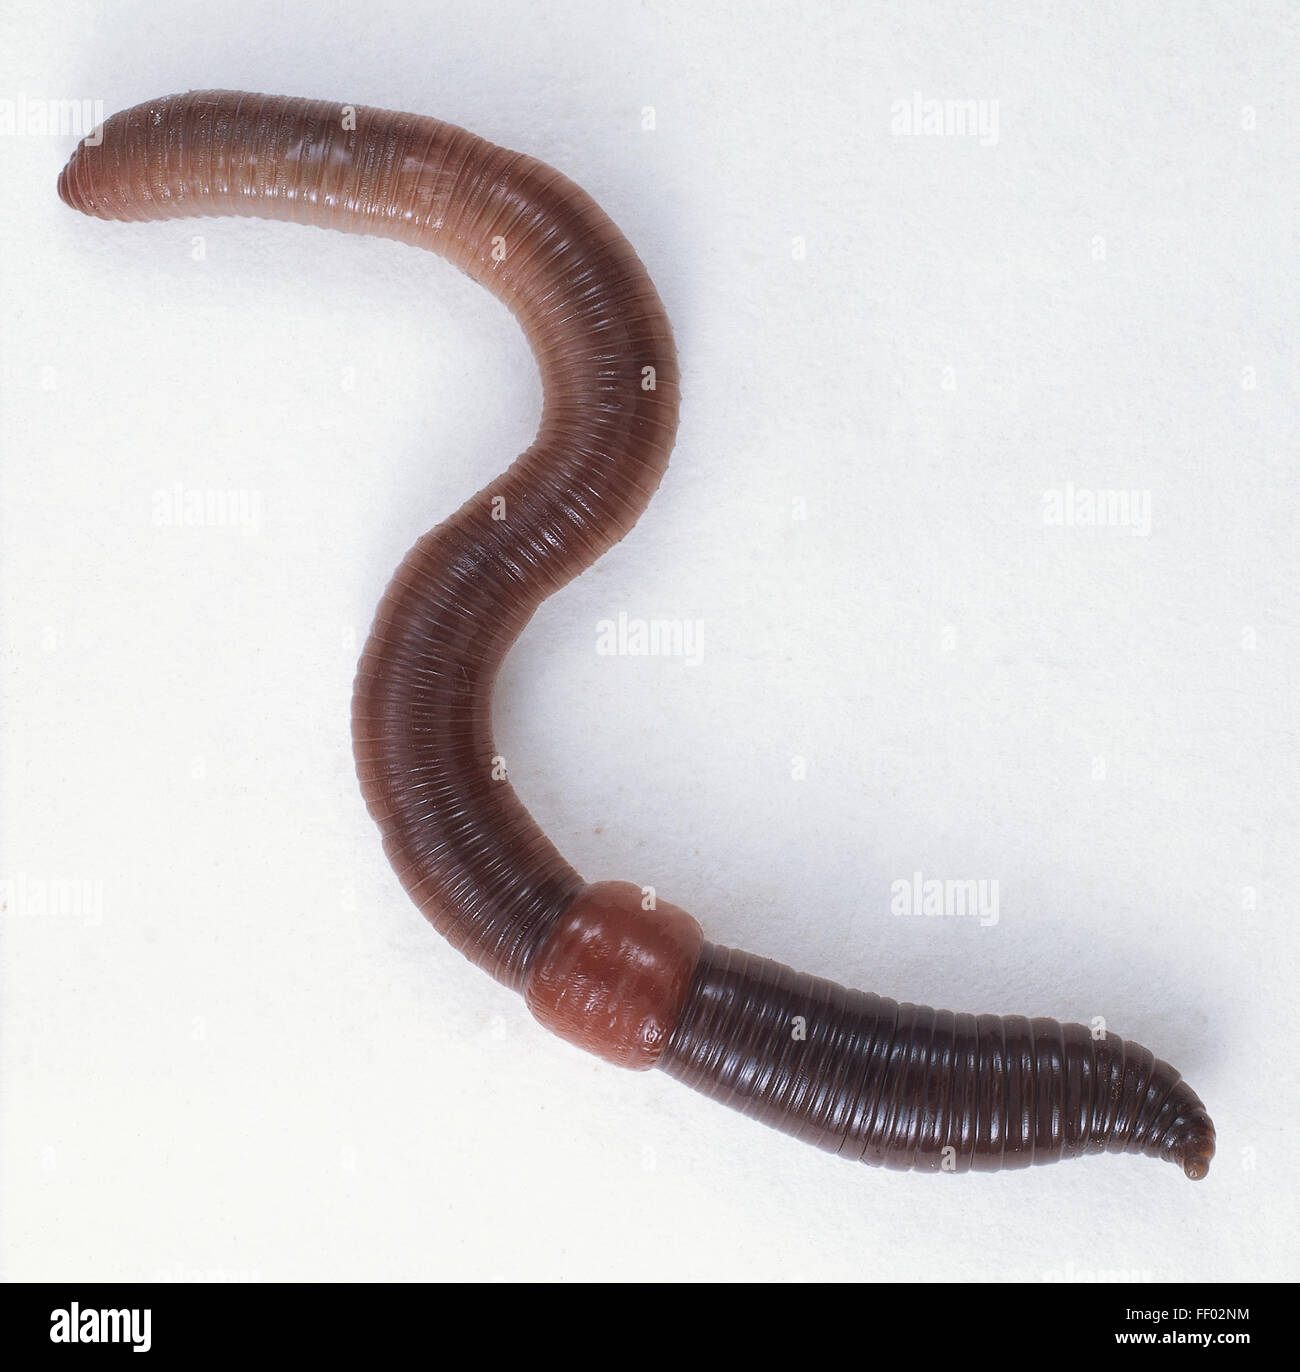 Earthworm Anatomy Stockfotos & Earthworm Anatomy Bilder - Alamy